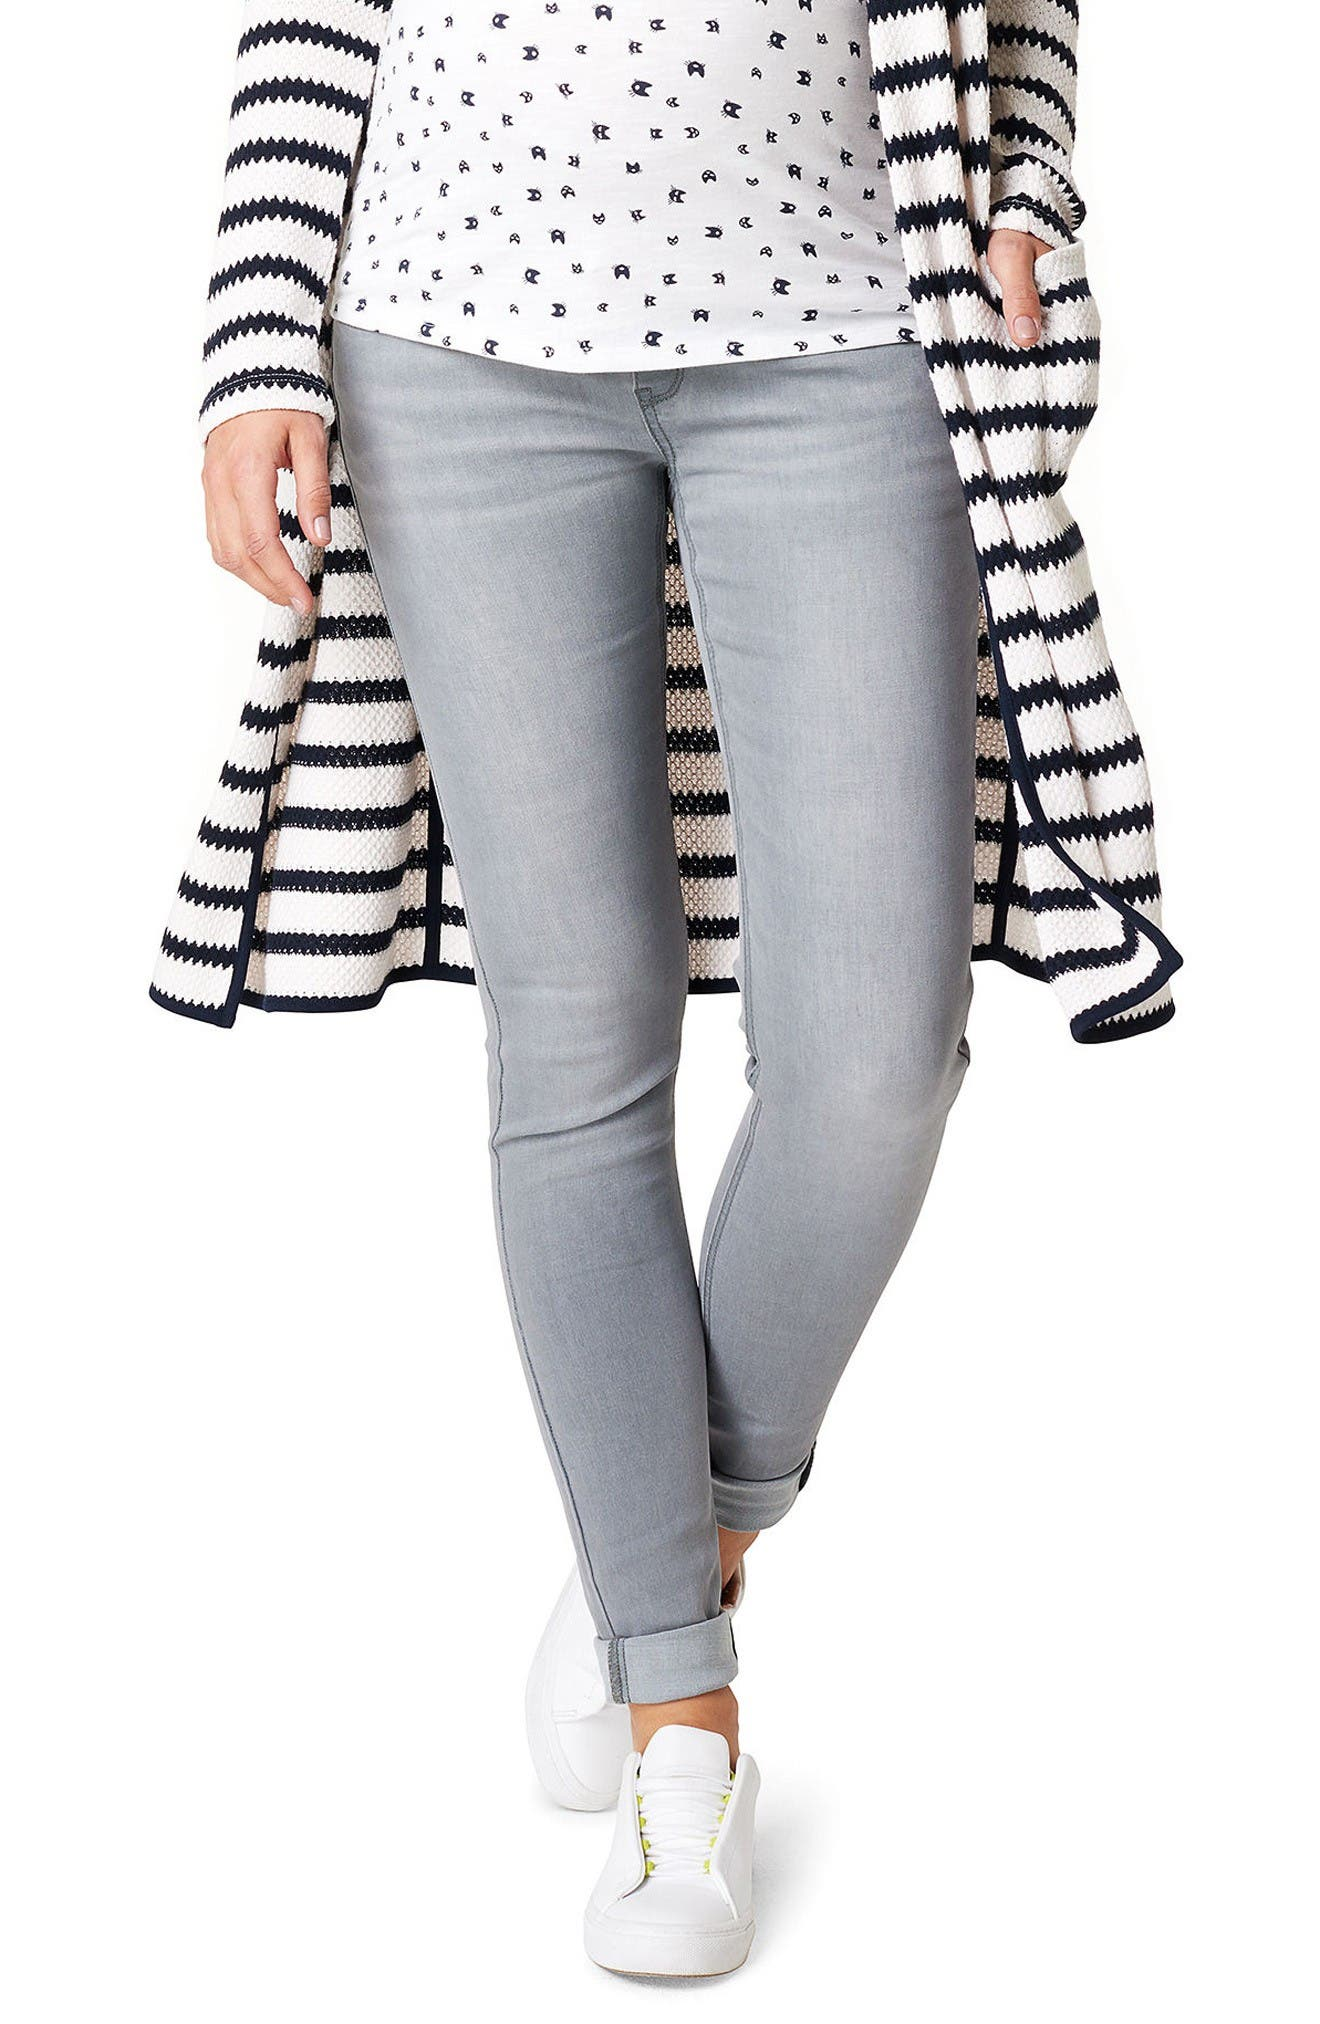 Noppies Iva Skinny Maternity Jeans